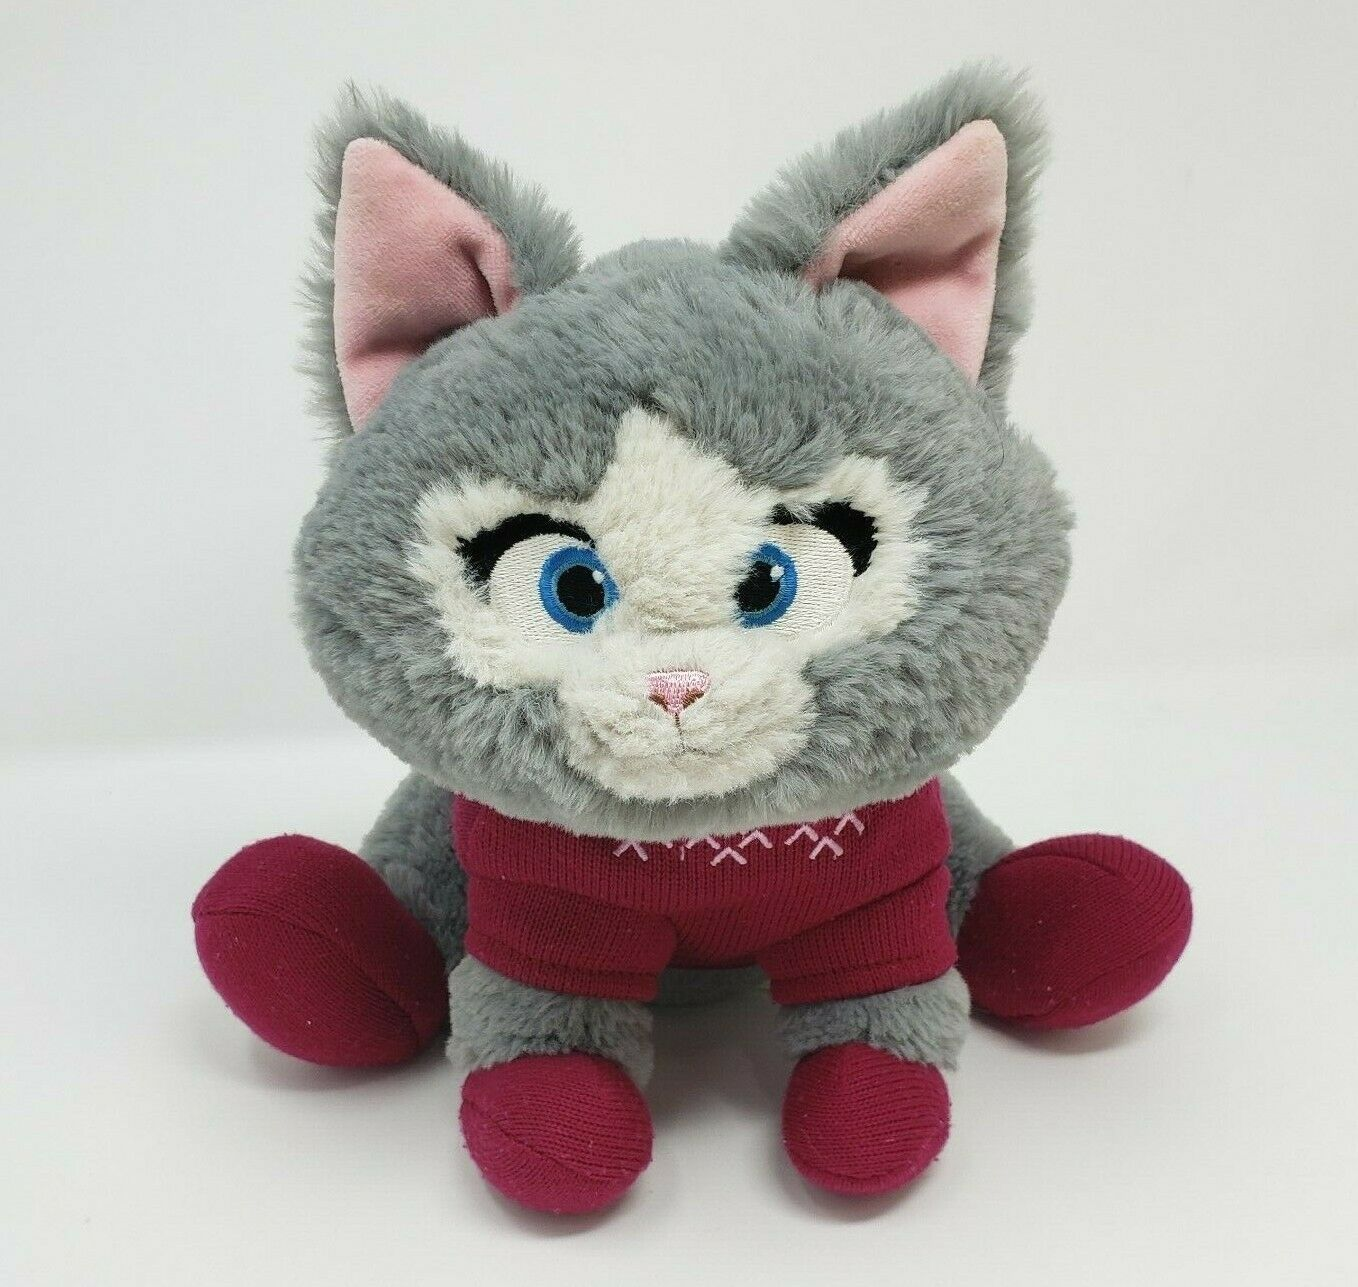 Disney Magasin Frozen Olaf Chaton Chat Mitaines Avec Pull Peluche Animal Jouet - $26.75